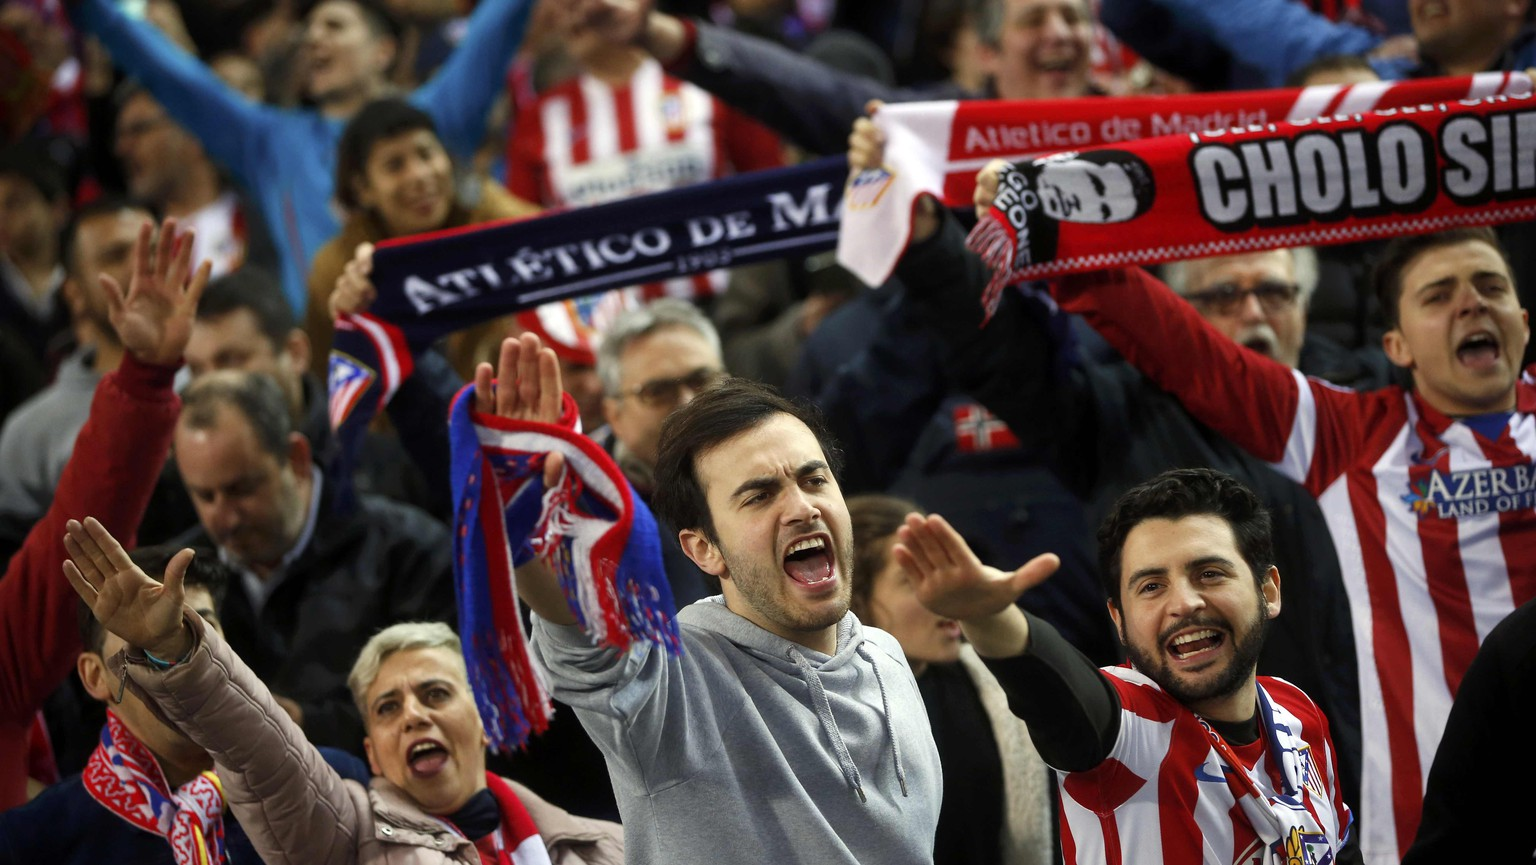 Football Soccer - Atletico Madrid v PSV Eindhoven  - UEFA Champions League Round of 16 Second Leg - Vicente Calderon stadium, Madrid, Spain - 15/3/16 Atletico Madrid fans shout before the match.  REUTERS/Susana Vera